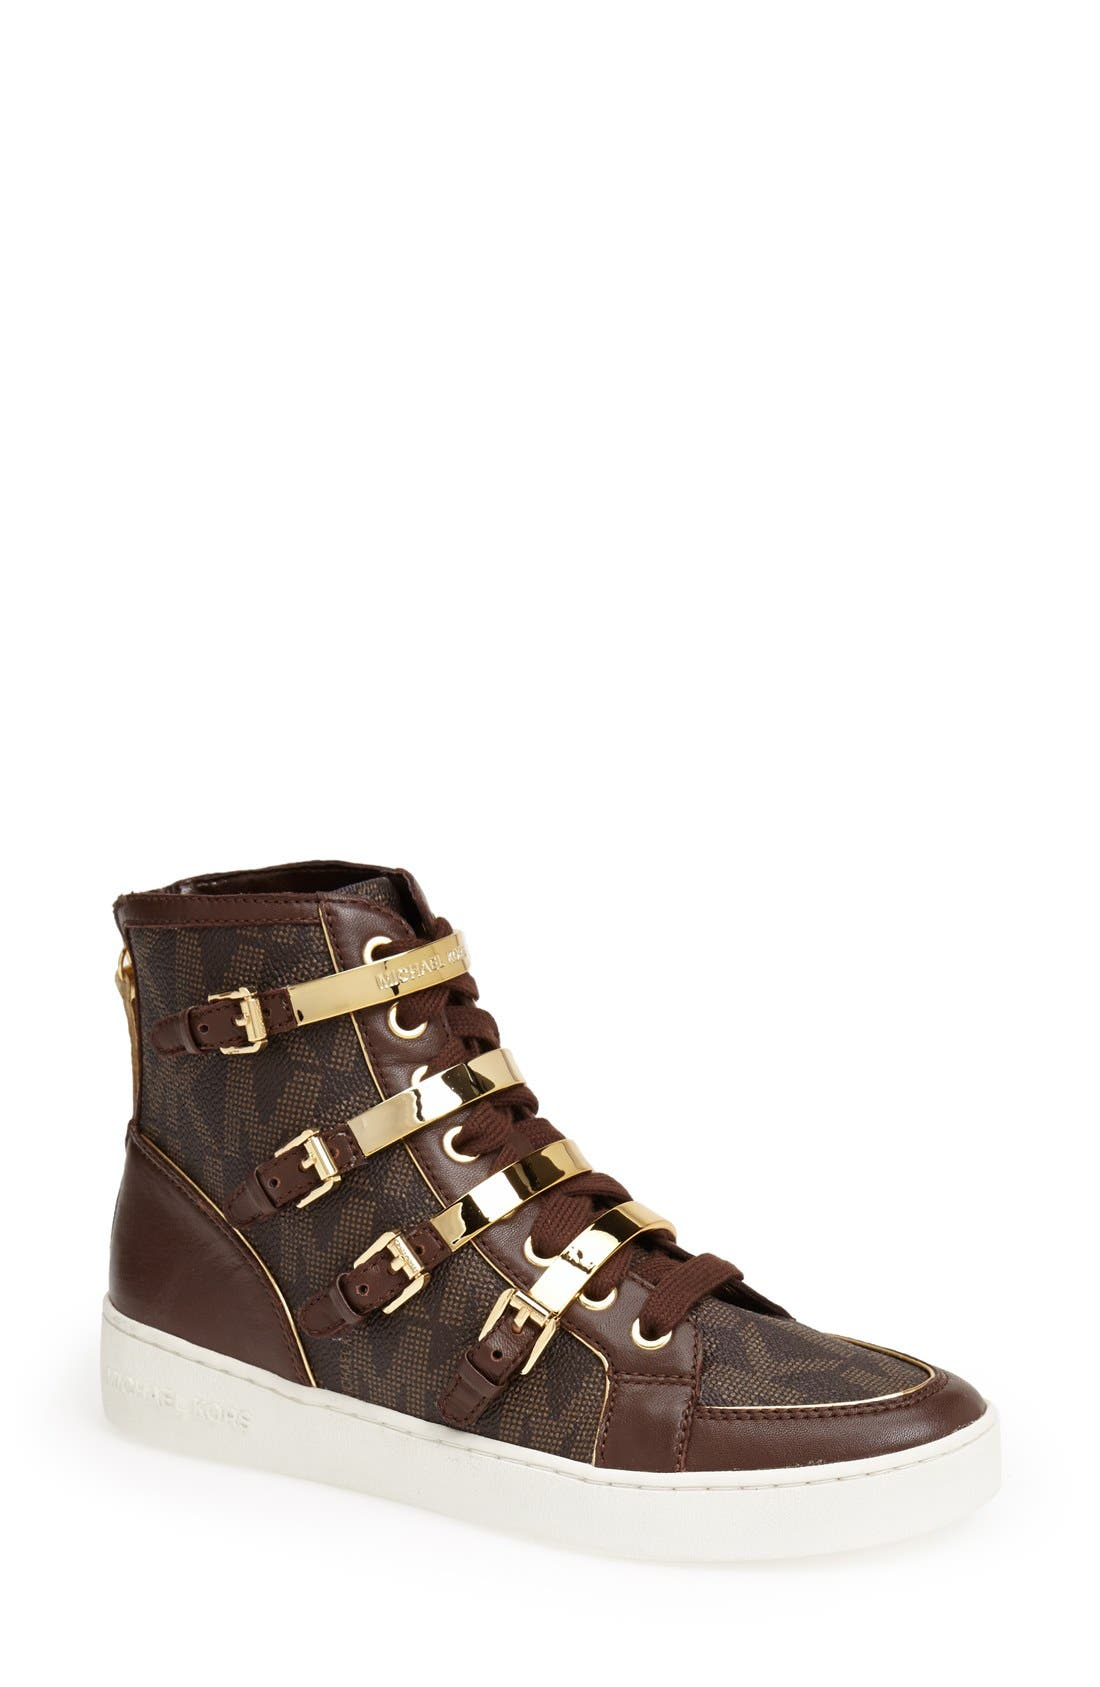 Main Image - MICHAEL Michael Kors 'Kimberly' High Top Sneaker (Women)